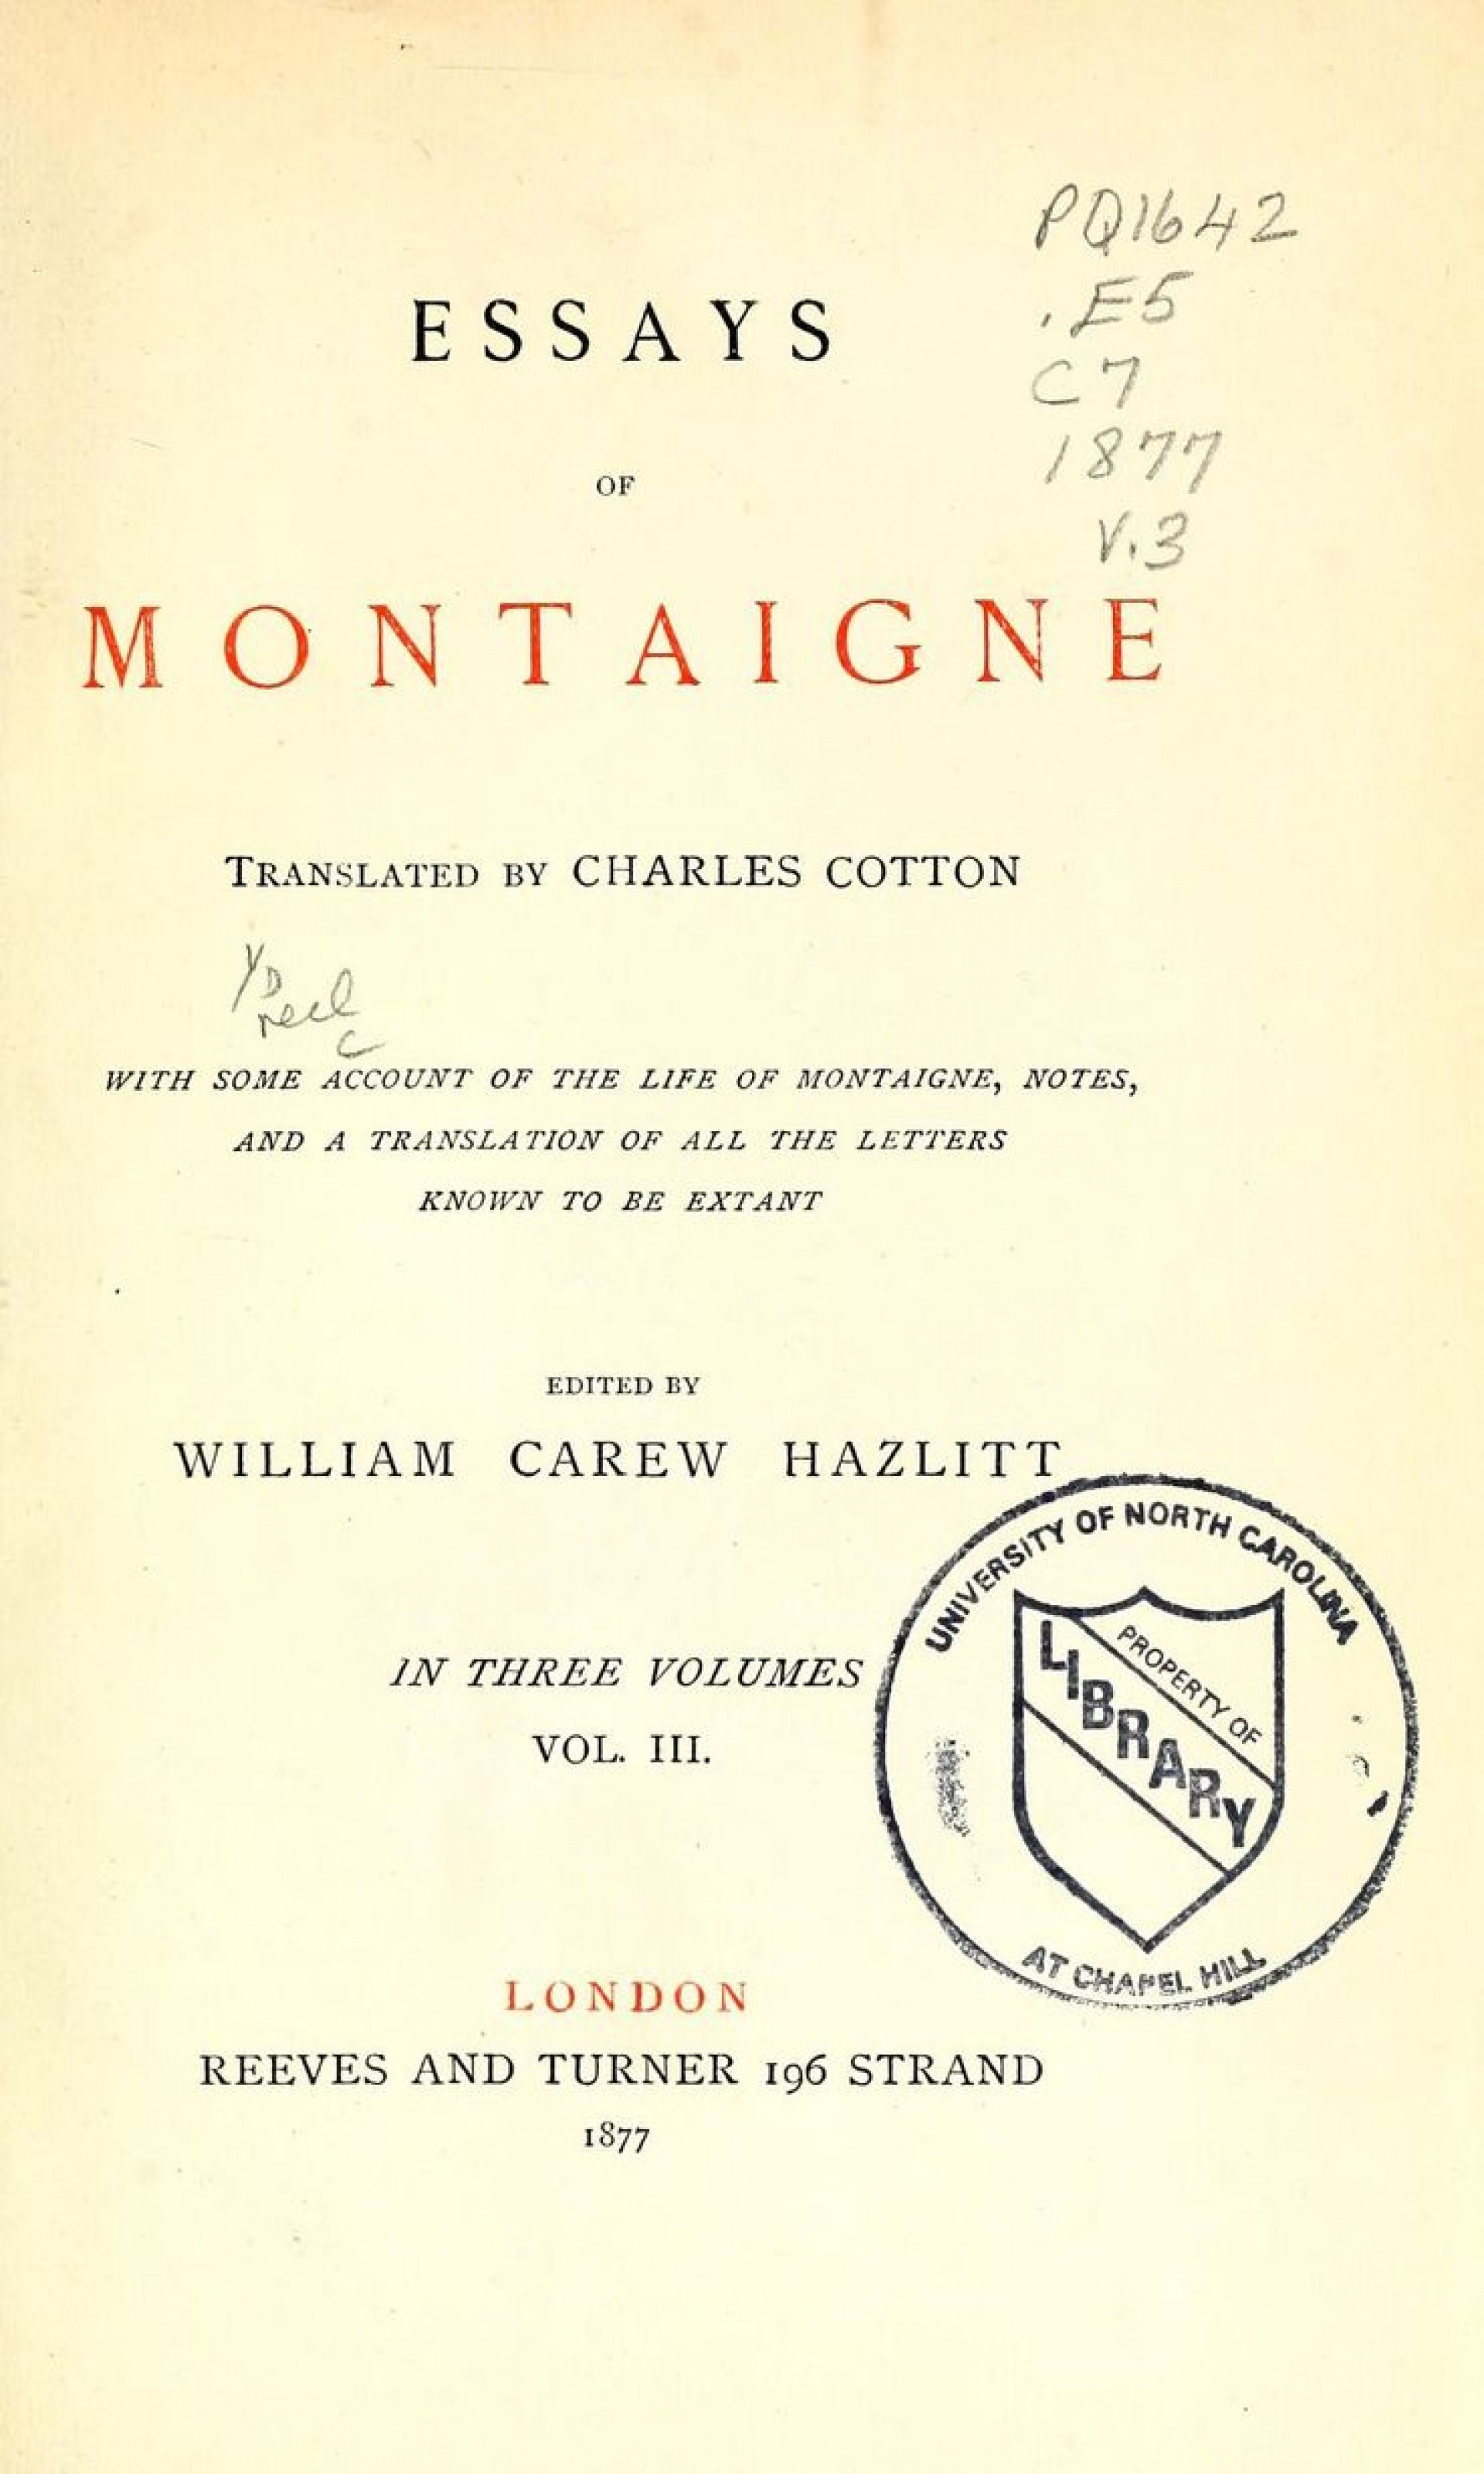 006 Montaigne Essays Pdf Essay Stirring Deutsch English Penguin 1920